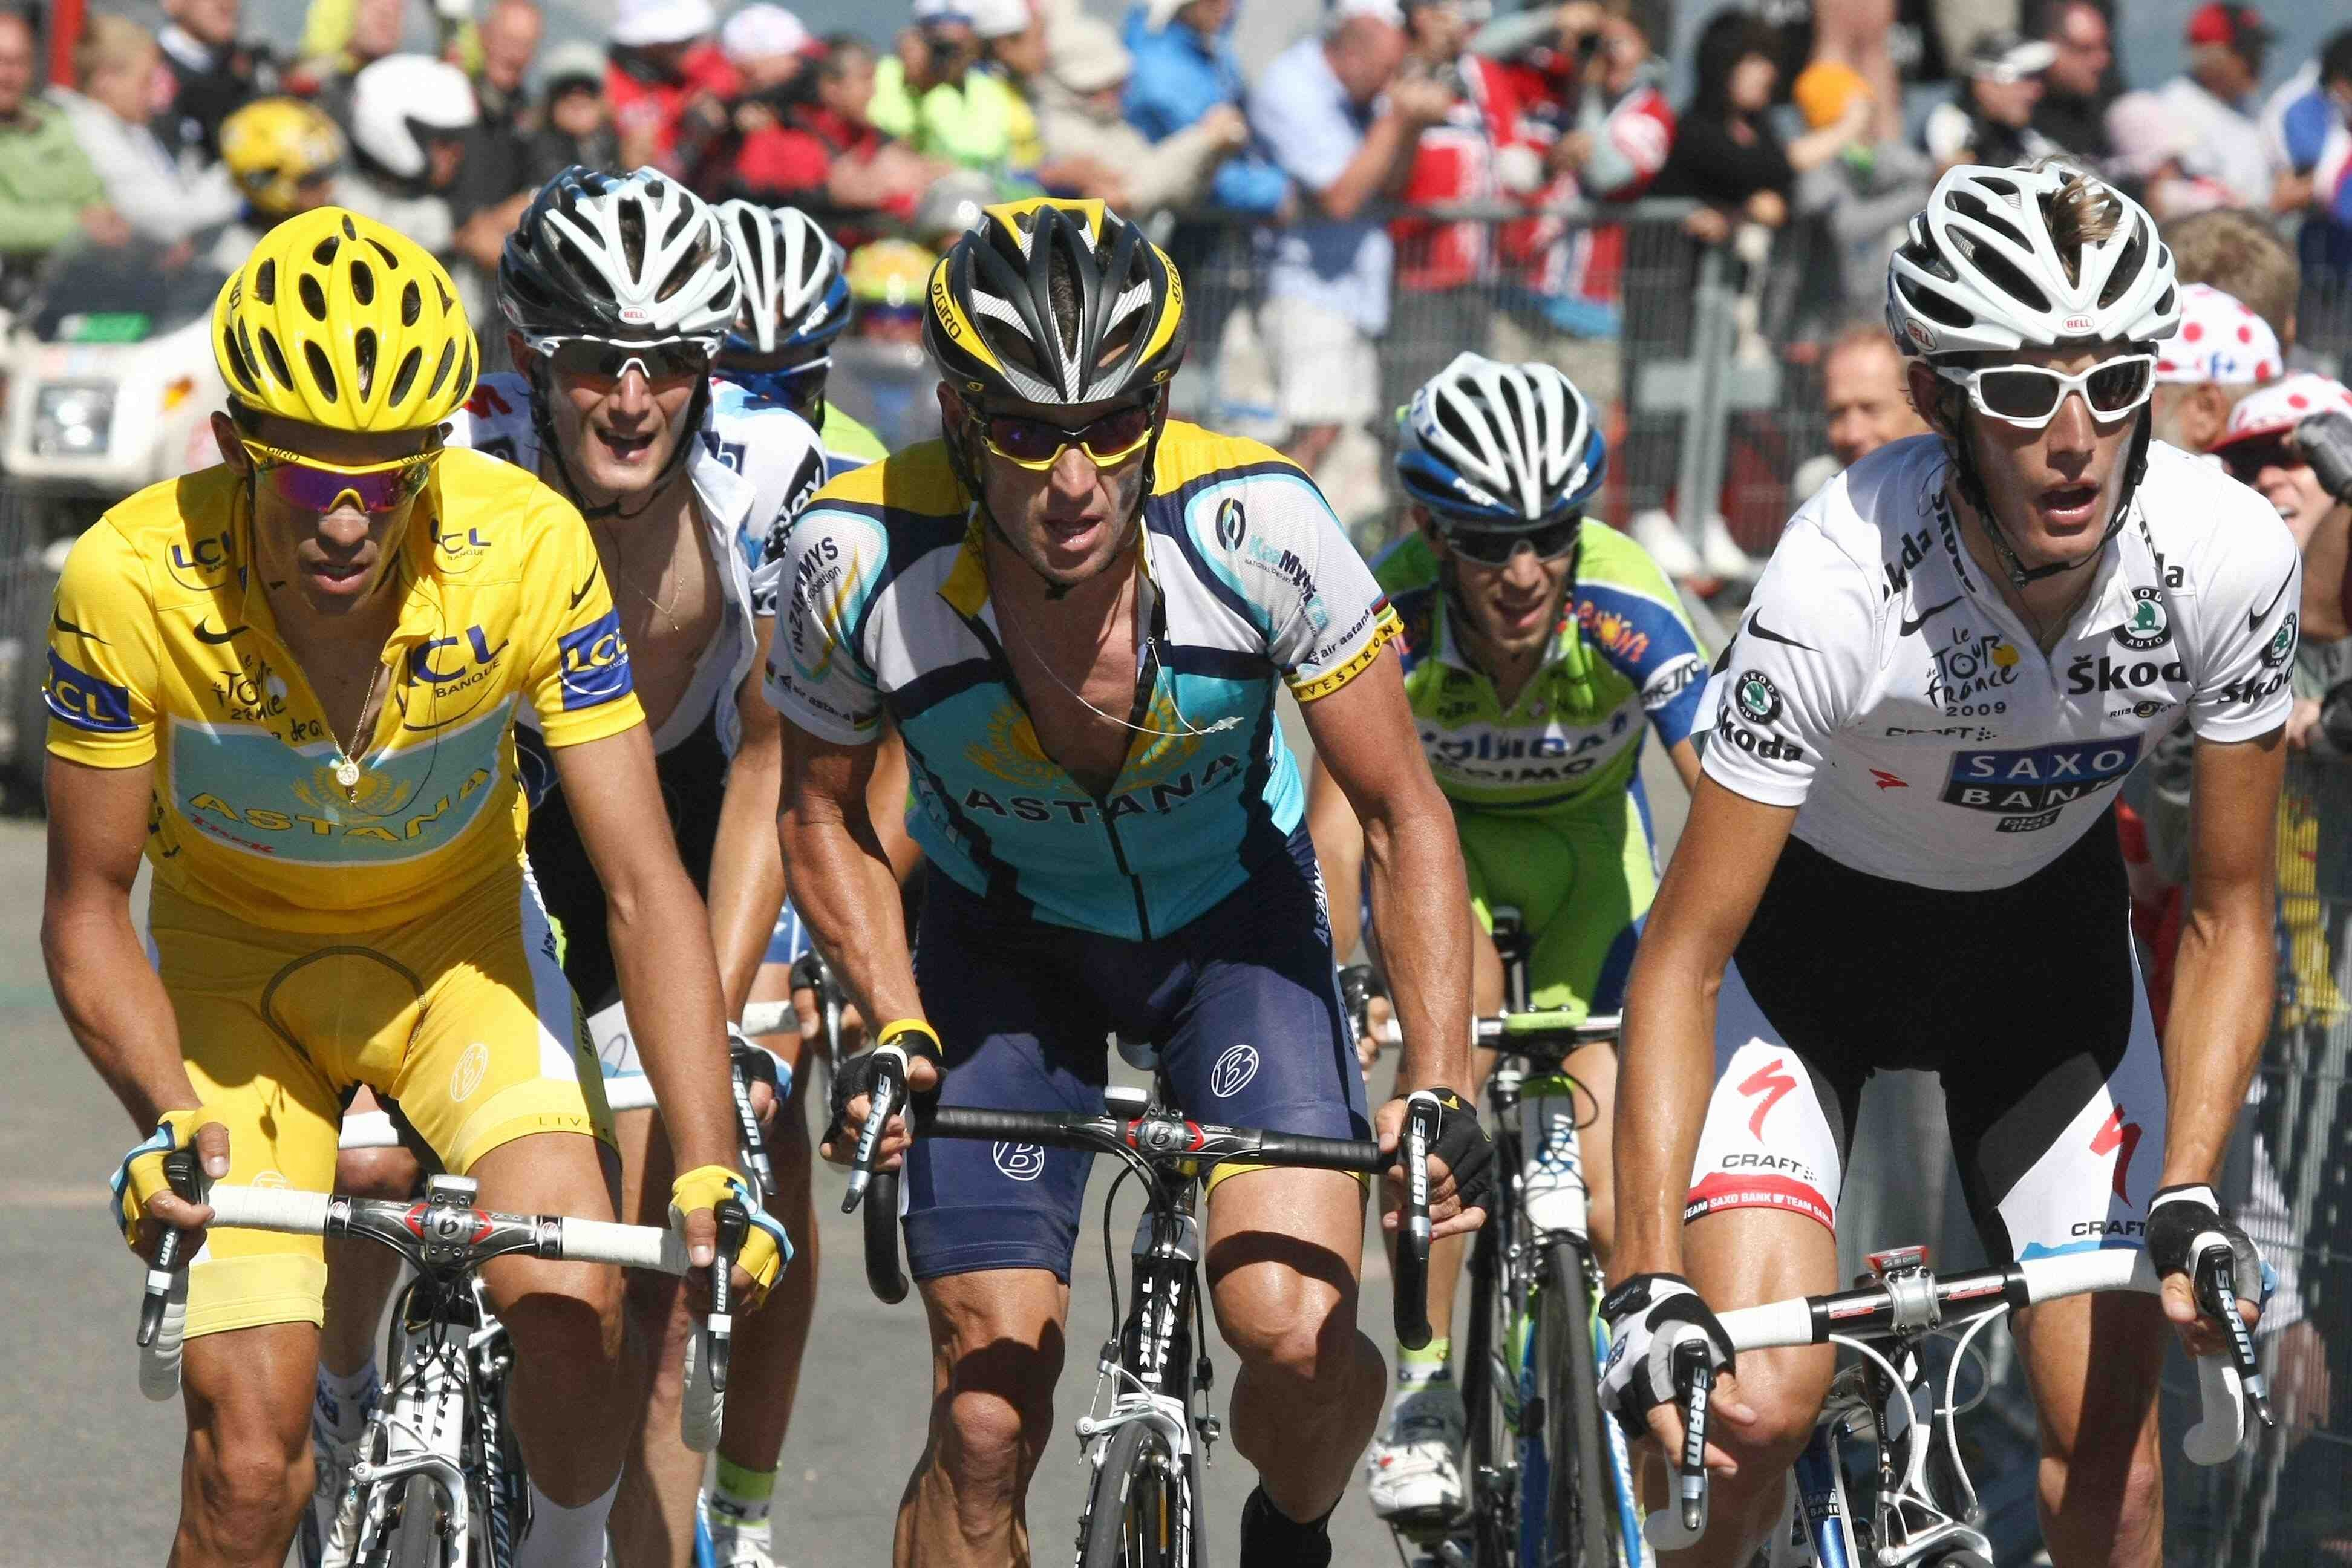 Lance Armstrong held pace with the climbers up Mt Ventoux Saturday.